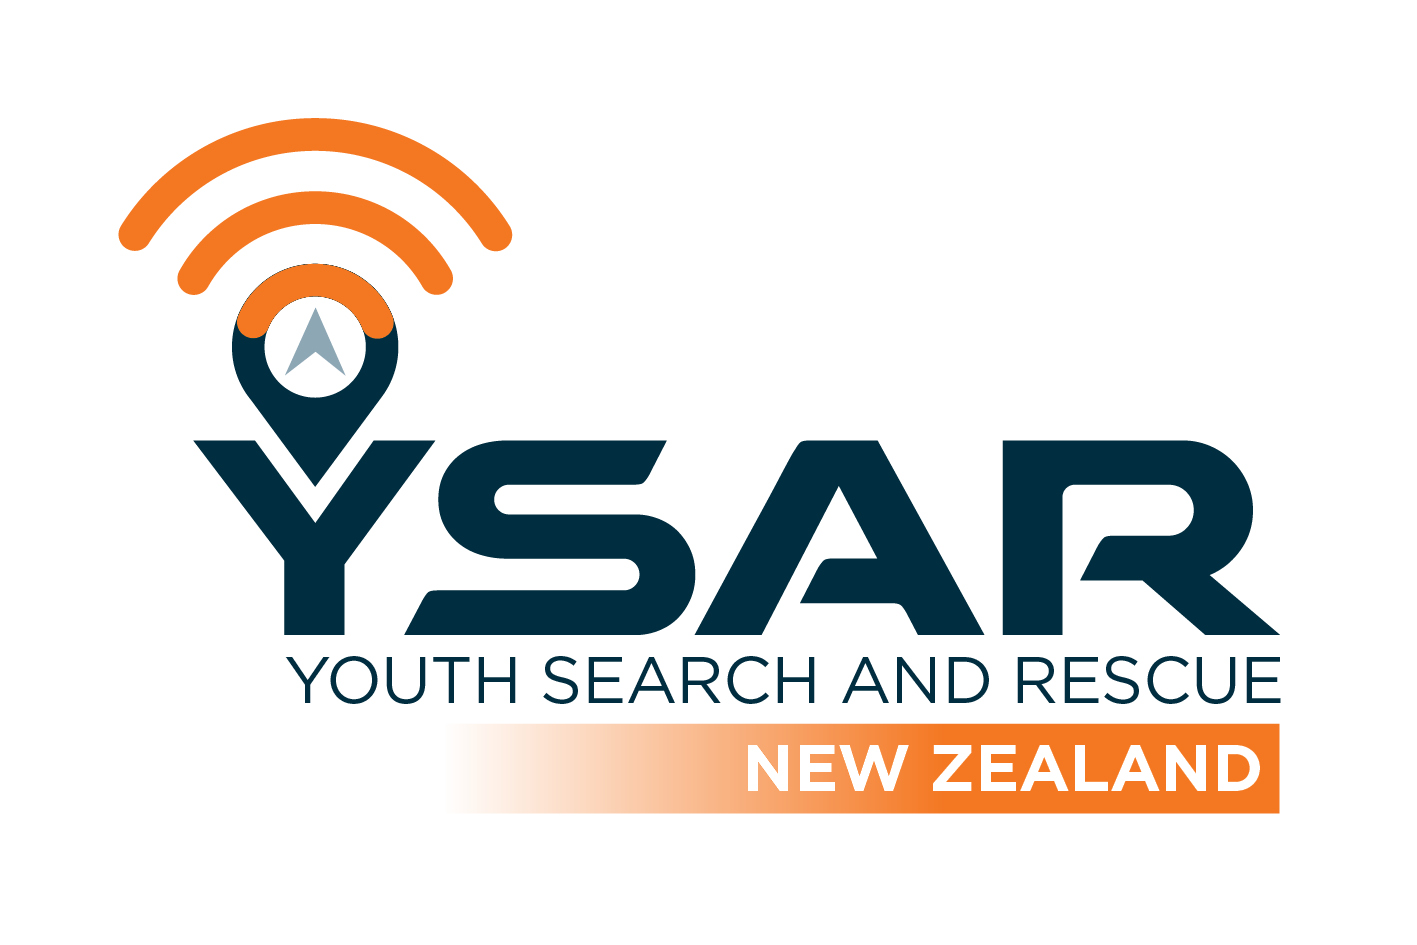 Youth Search and Rescue